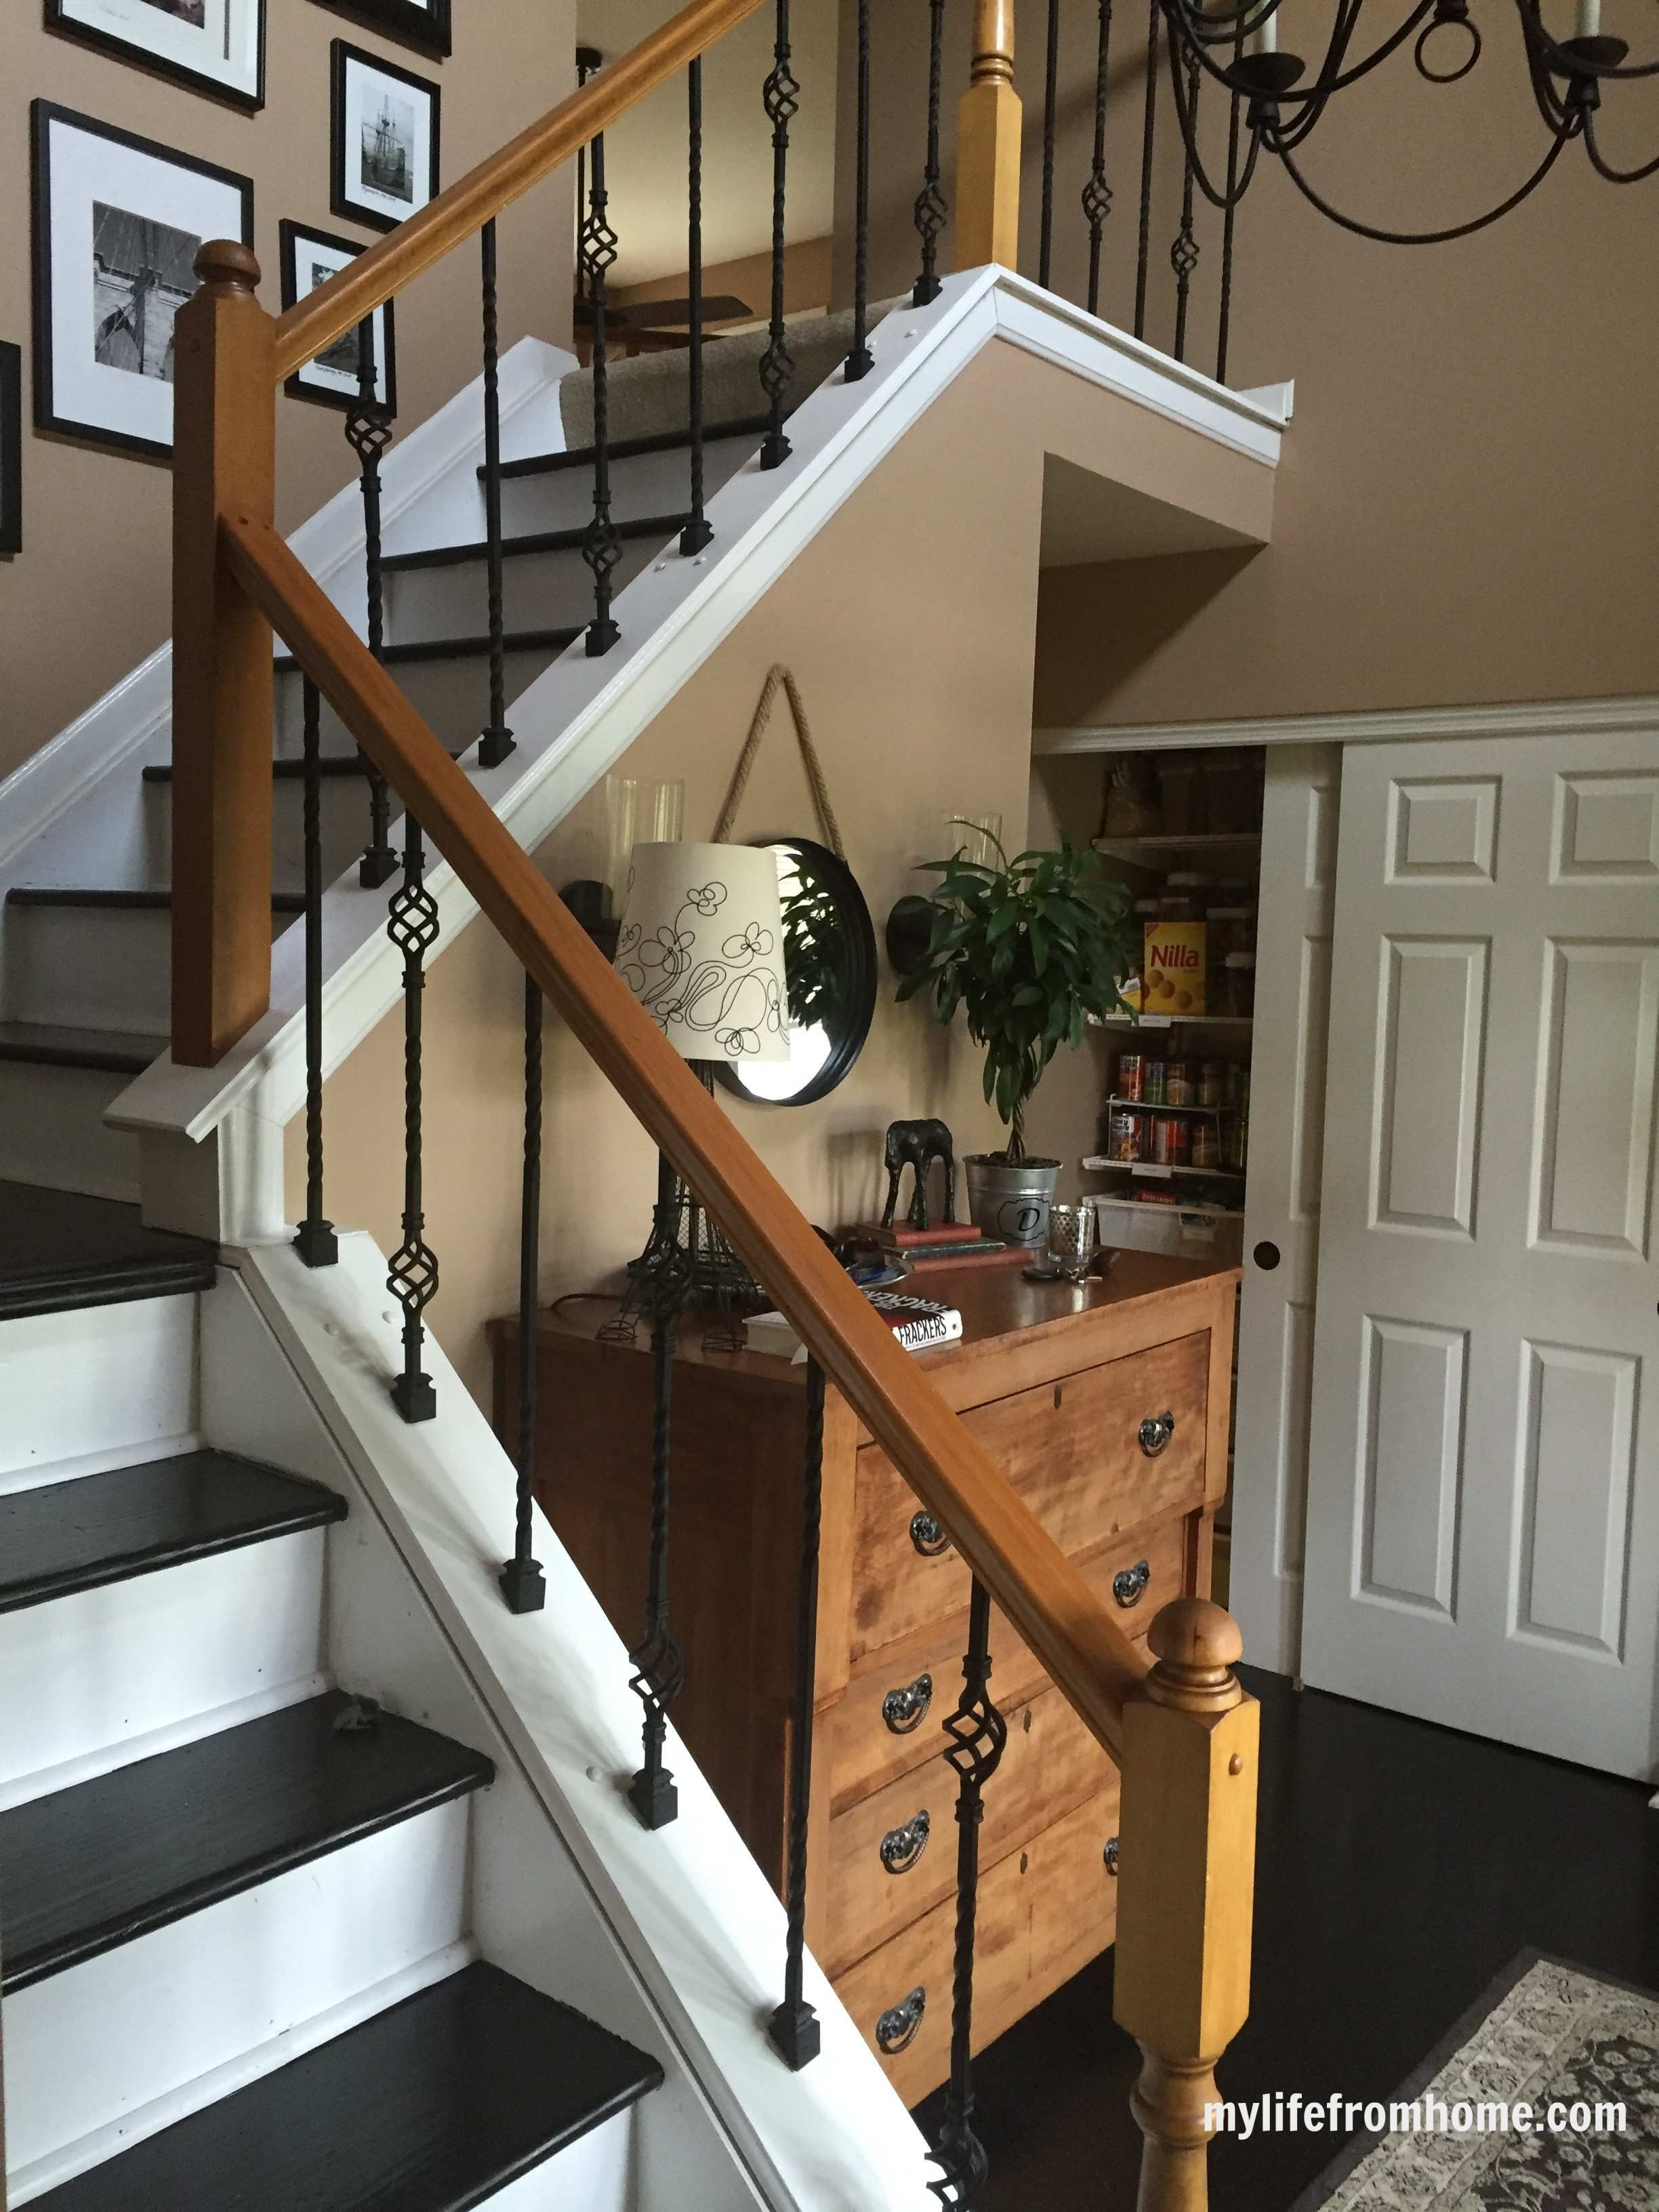 Diy Railings Adding Wrought Iron Spindles White Cottage Home   Diy Curved Stair Railing   Spiral Staircase   Glass   Staircase Makeover   Stair Case   Railing Ideas